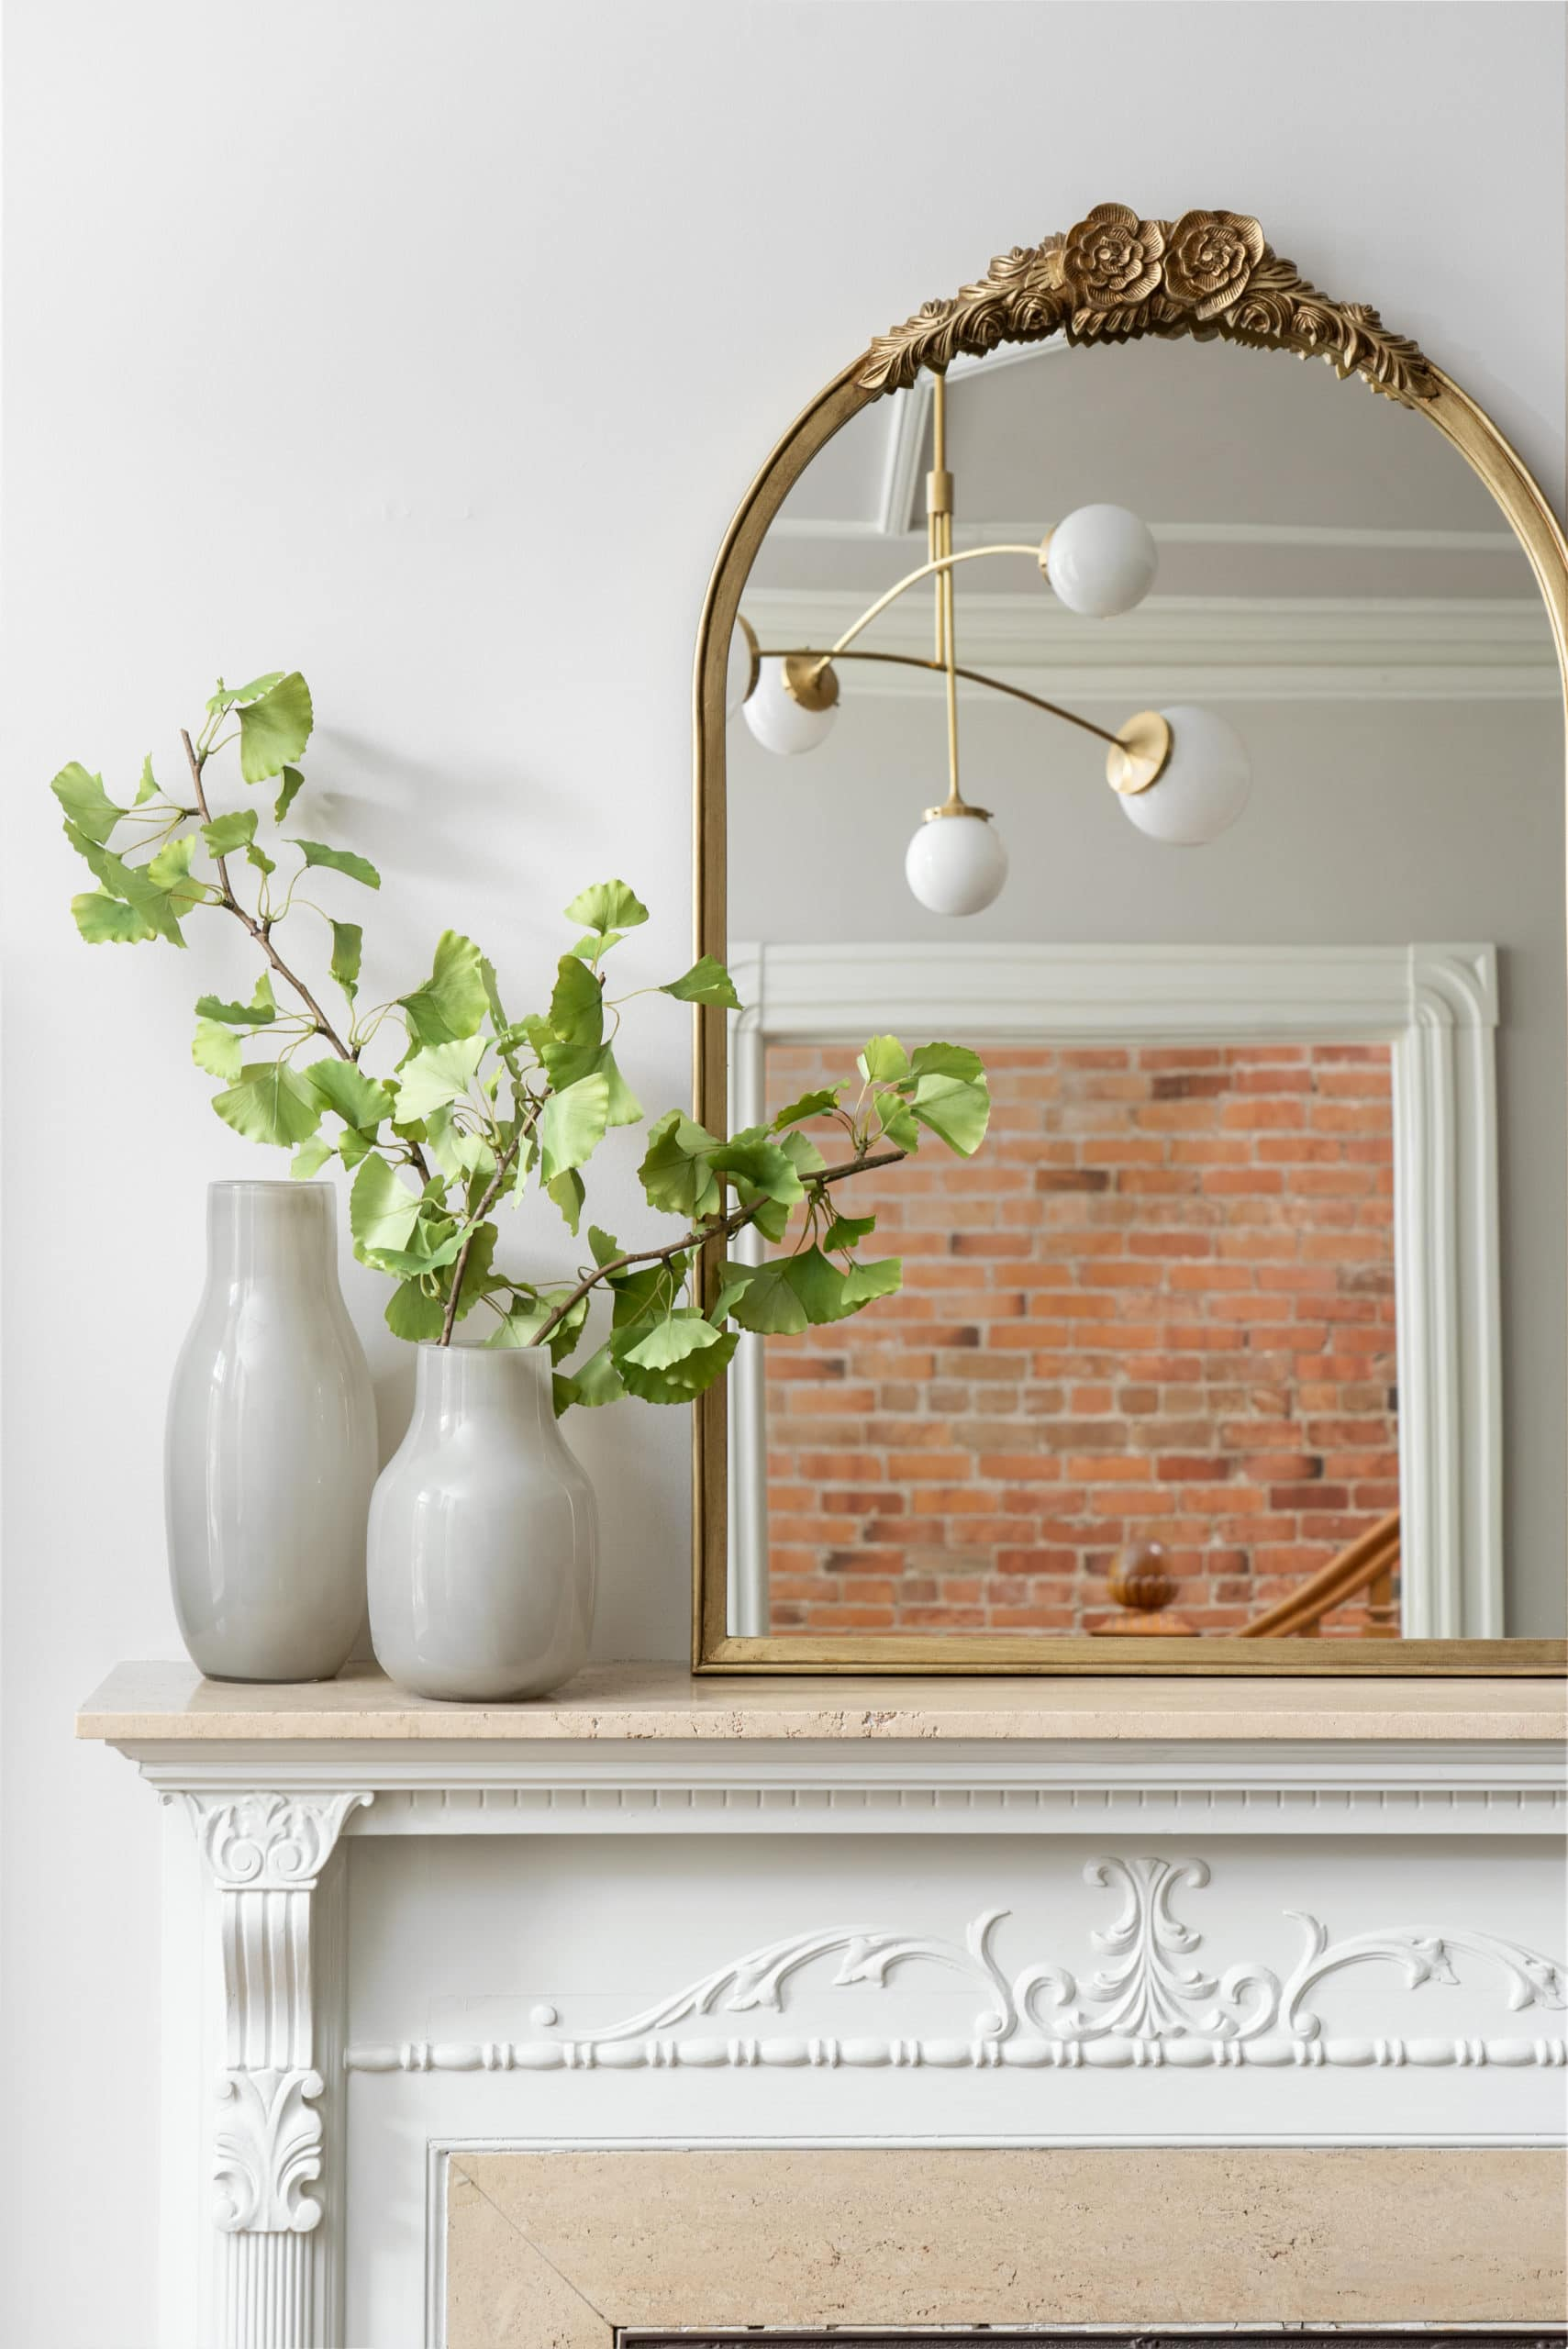 Modern fireplace with a mirror and a couple of potted plants on it